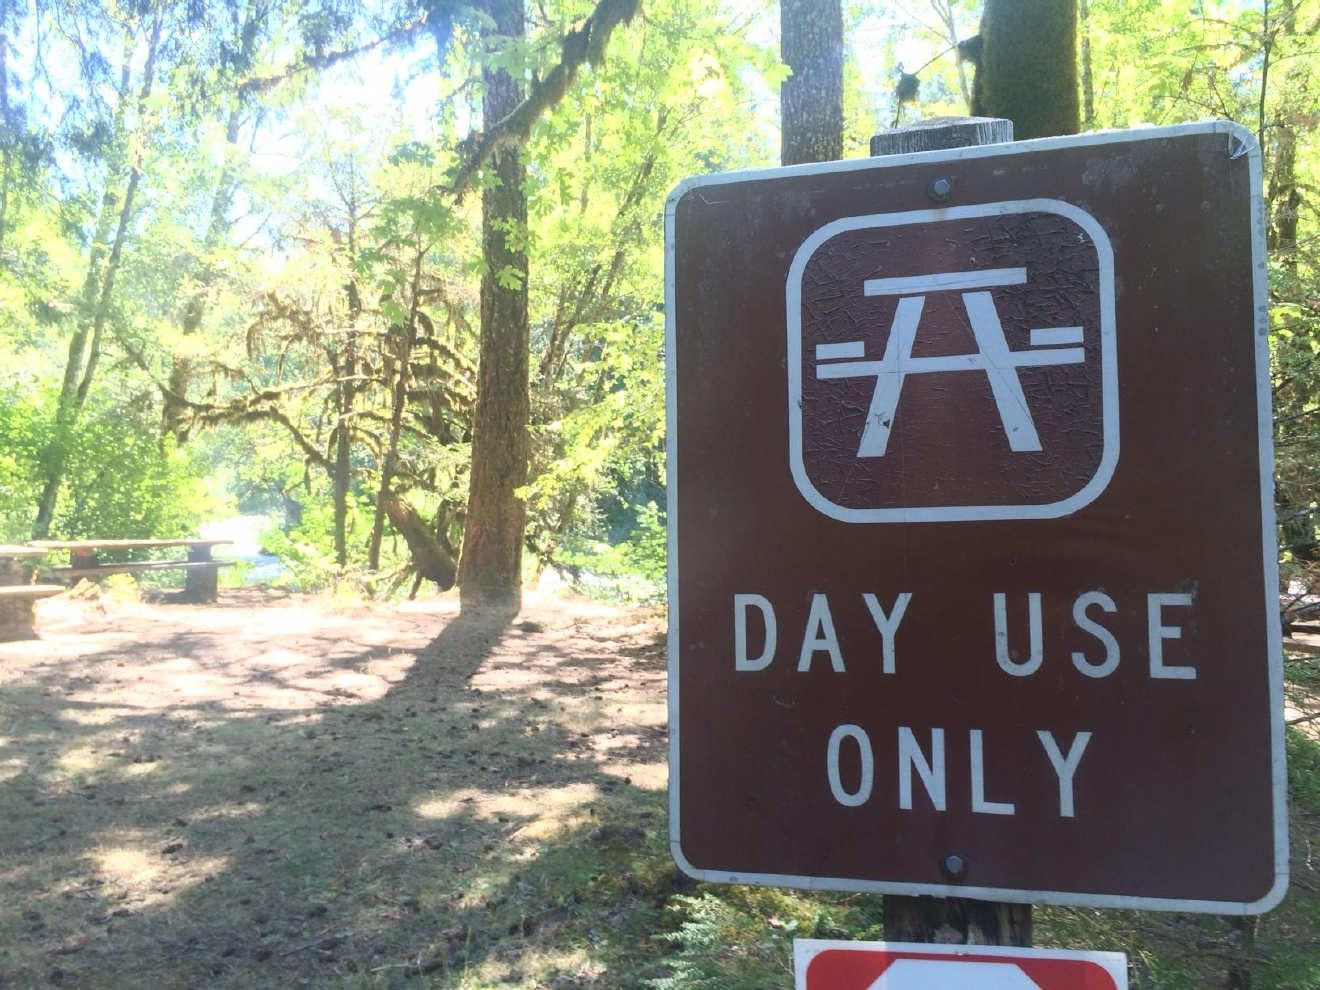 "<p>The U.S. Forest Service will waive fees at day-use recreation sites in Oregon and Washington Nov. 11 – 12 in honor of Veterans Day.</p><p>""We honor our veterans each November 11th and every other day of the year,"" said Jim Peña, Regional Forester. ""We hope that this time will serve as a way for our veterans and other visitors to find our national forests as a year-round respite, a place where they can take time out for themselves.""</p>This fee waiver includes many picnic areas, boat launches, trailheads, and visitor centers. Concession operations will continue to charge fees unless the permit holder wishes to participate. Fees for camping, cabin rentals, heritage expeditions, or other permits still apply. (SBG photo)"